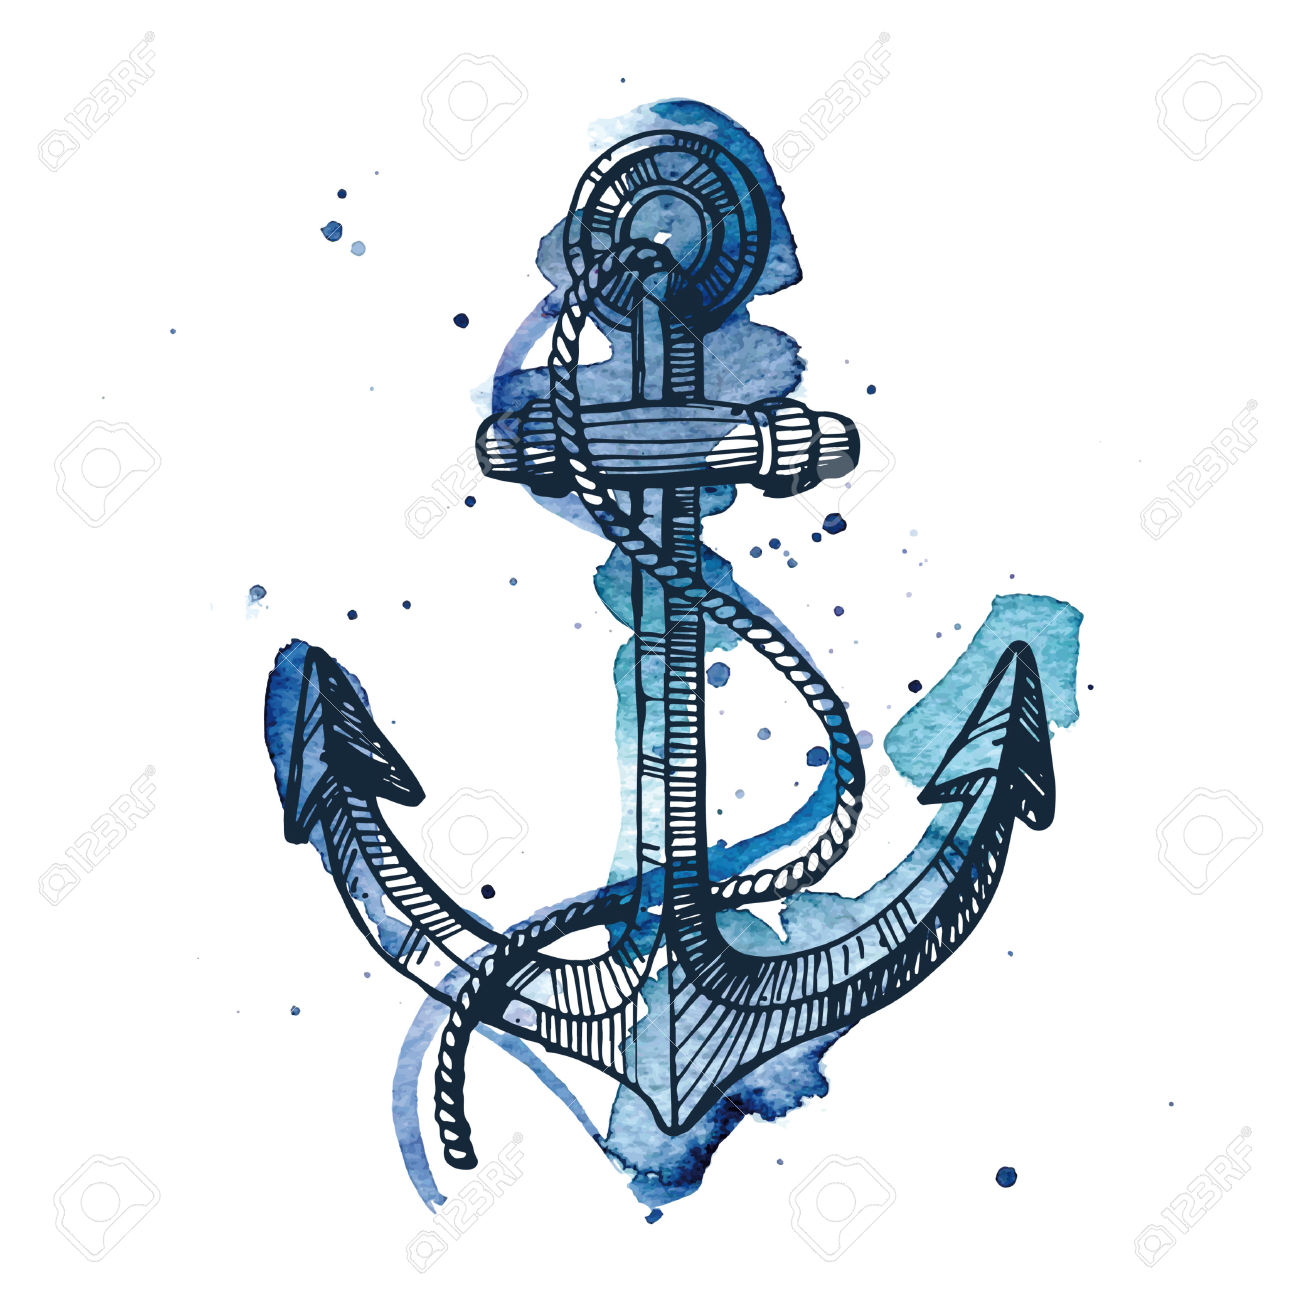 1300x1300 13,779 Boat Anchor Stock Illustrations, Cliparts And Royalty Free